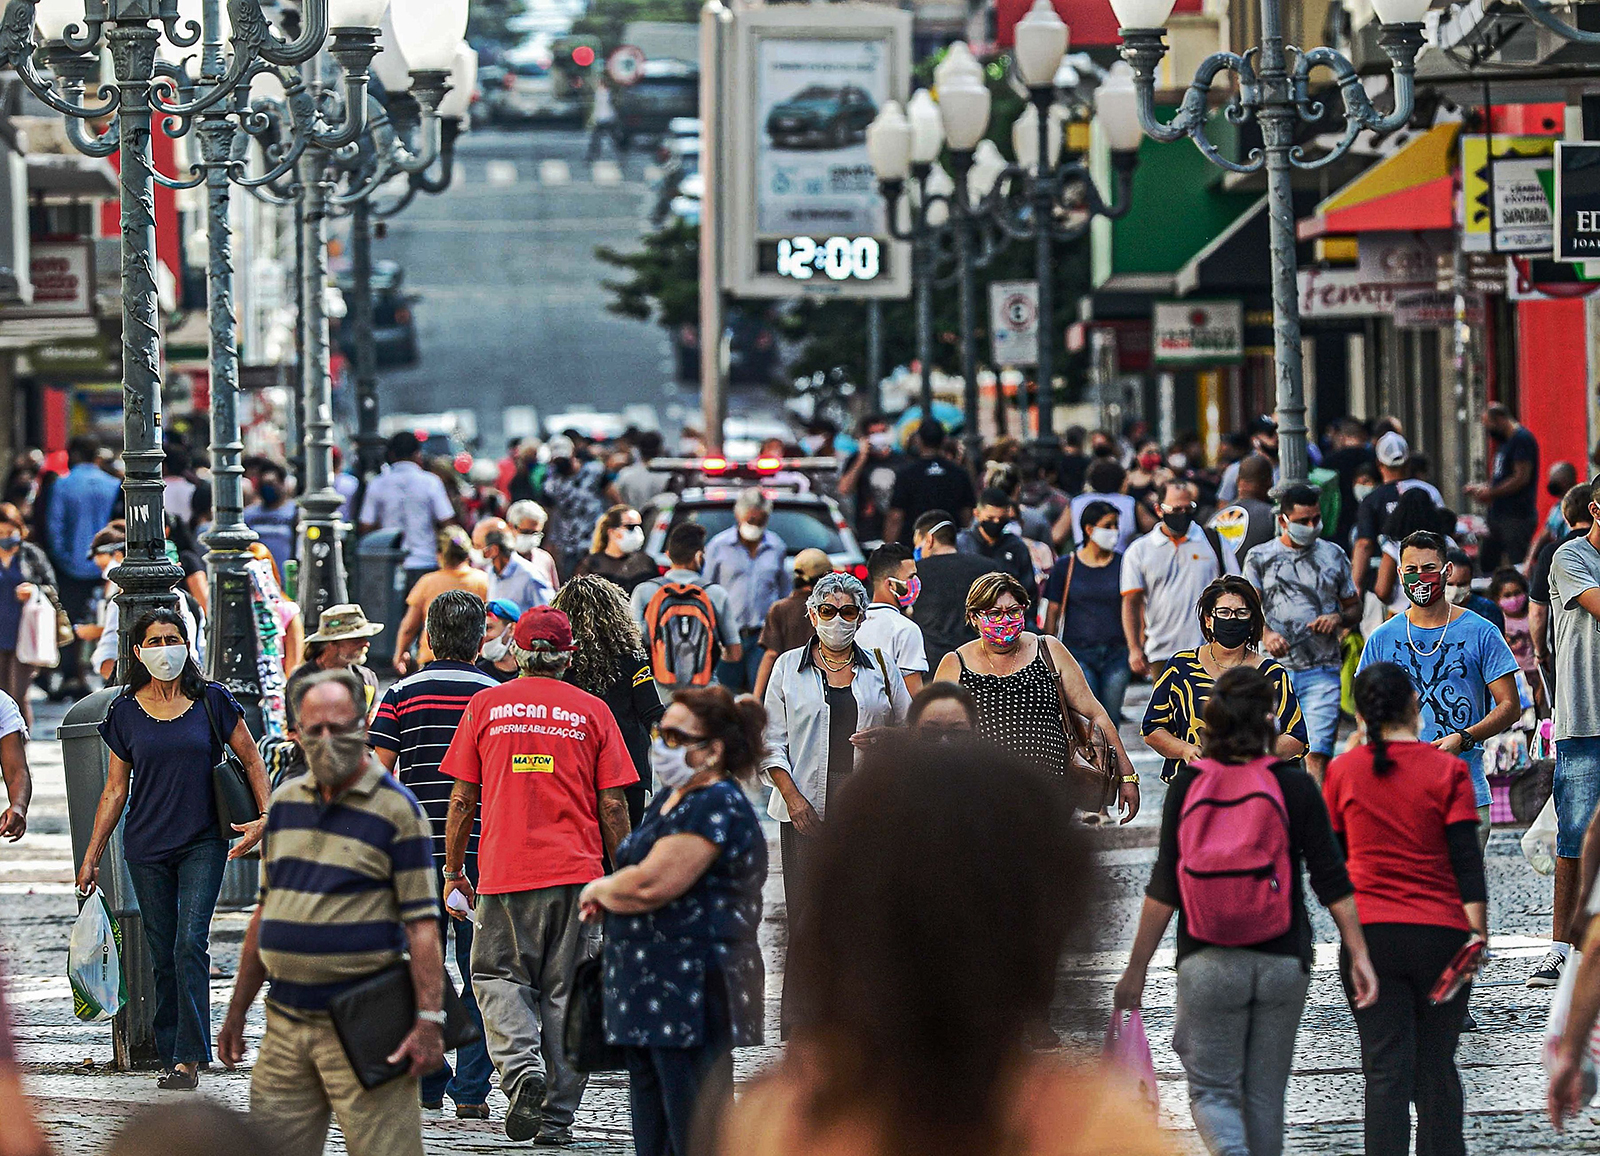 People walk through a crowded street in Florianopolis, Santa Catarina state, Brazil, on May 12.